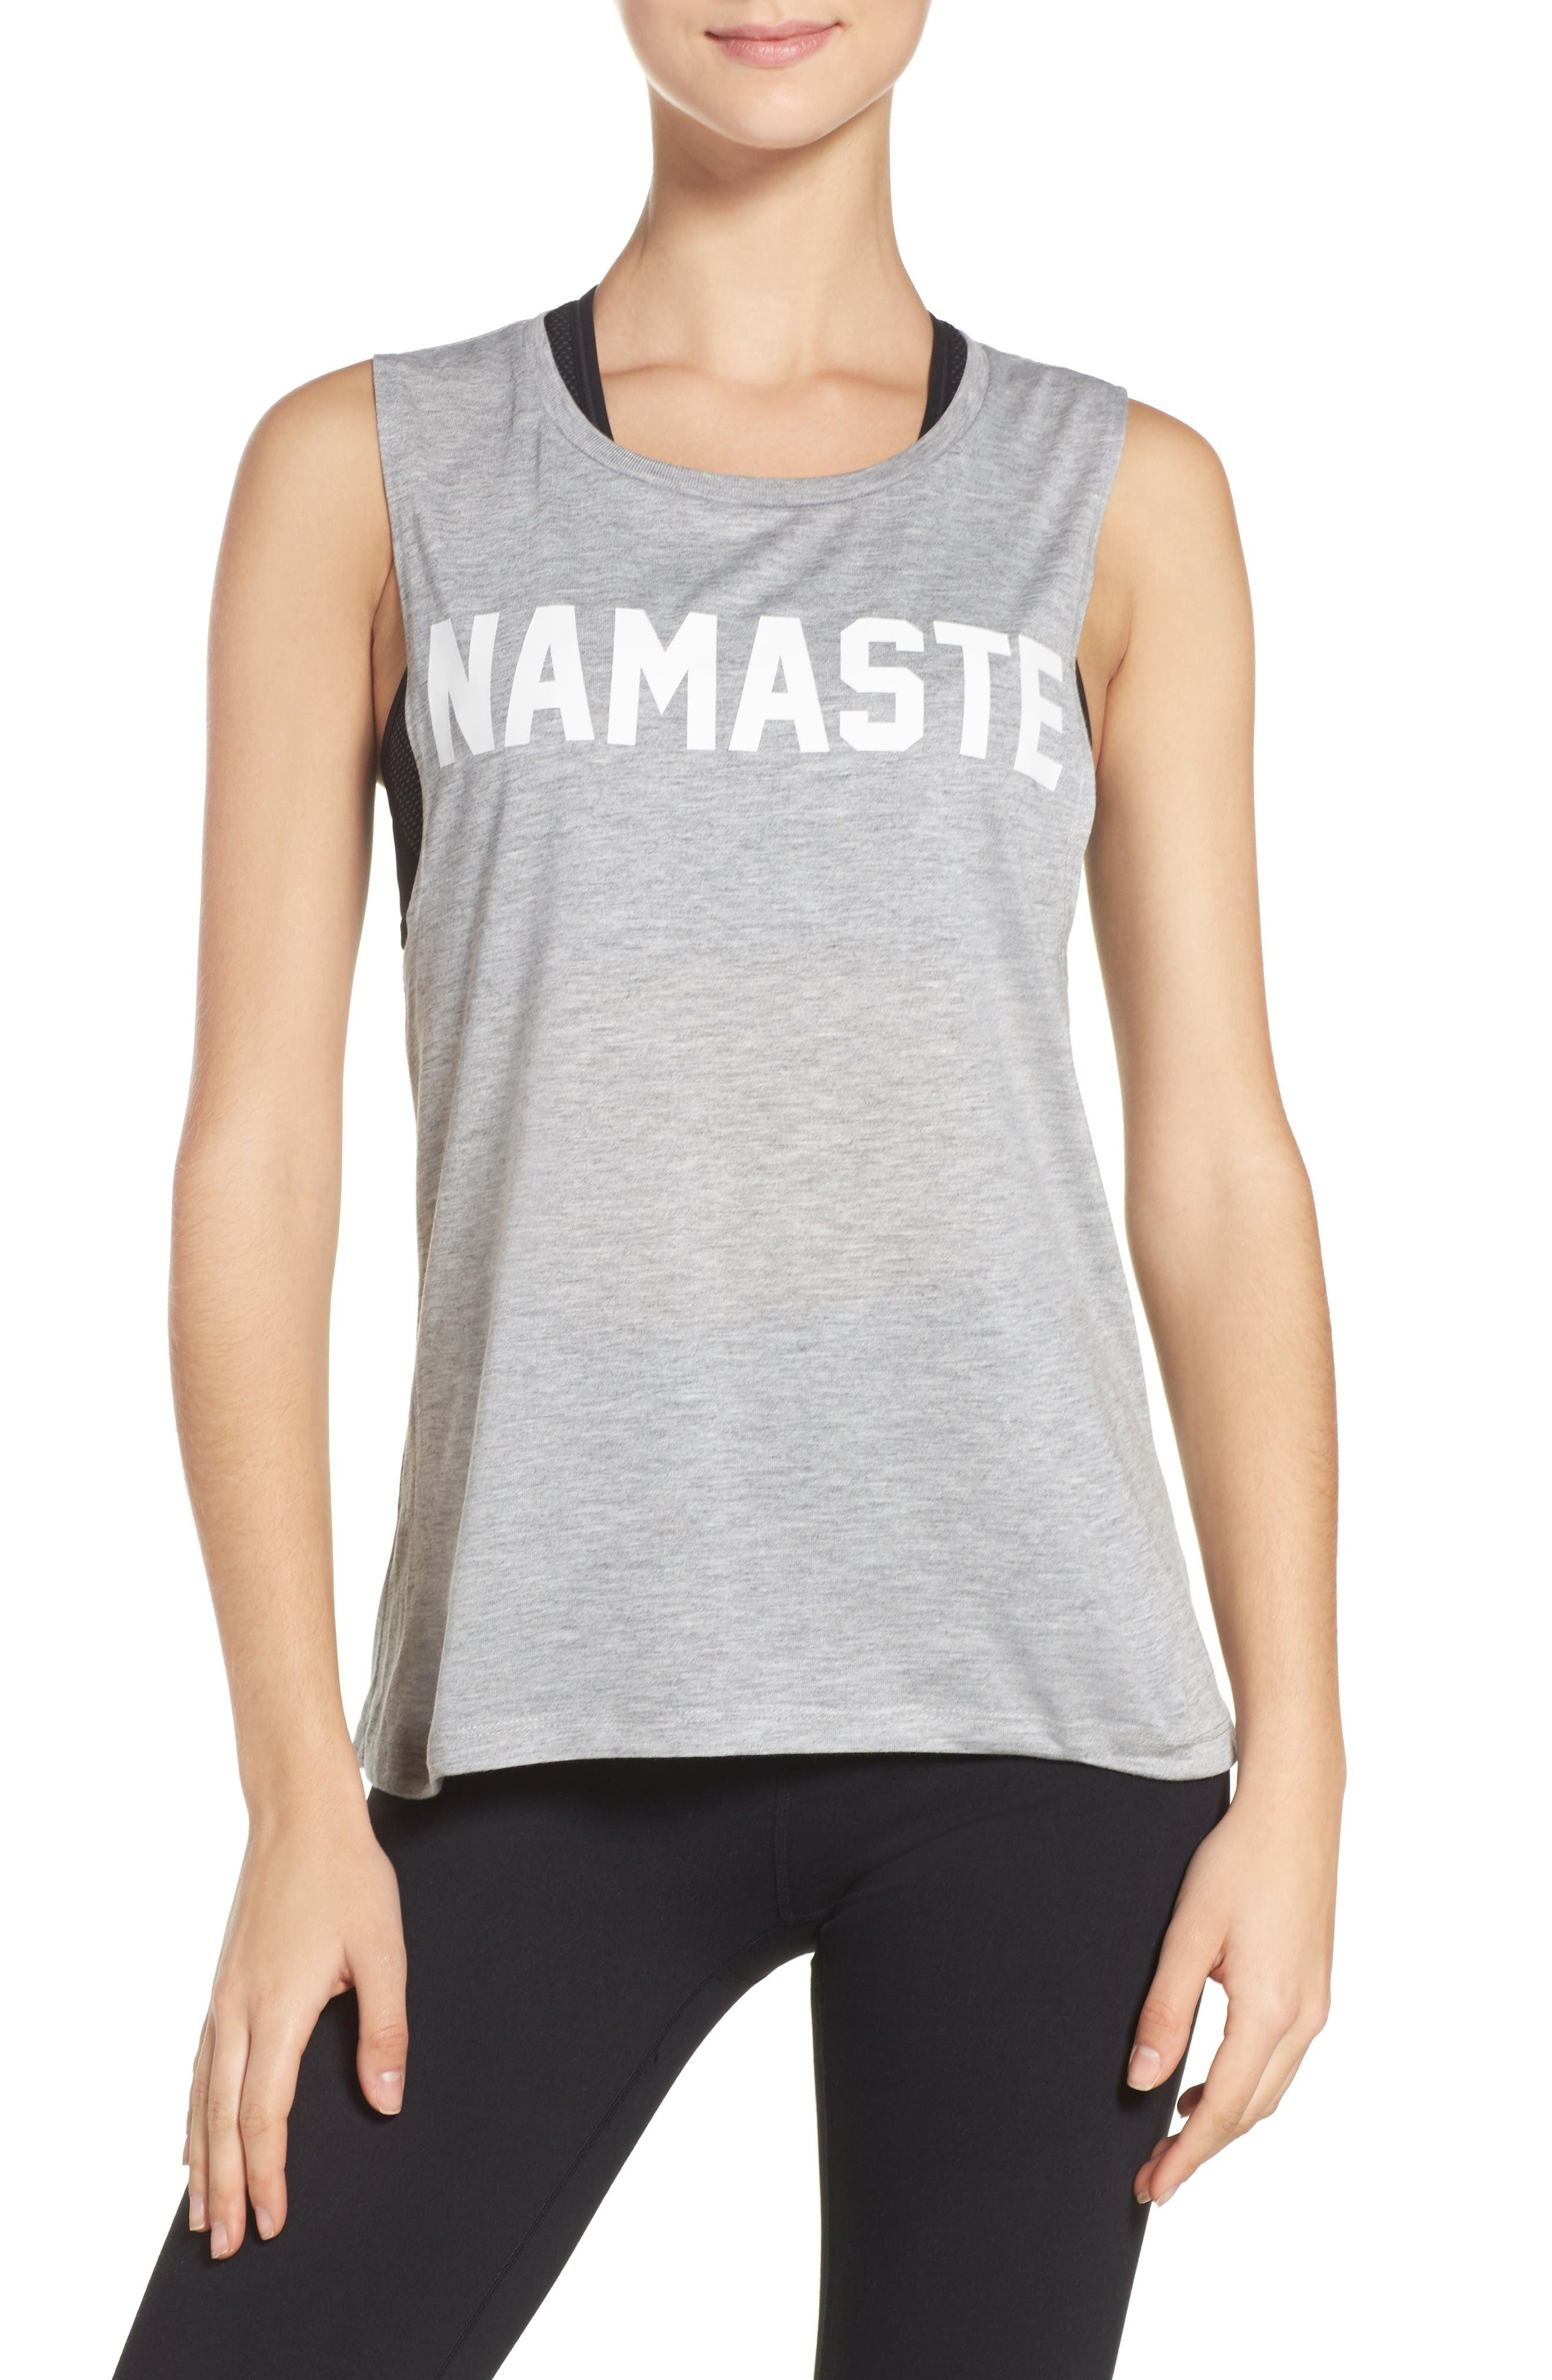 Alternate Image 1 Selected - Private Party Namaste Tank